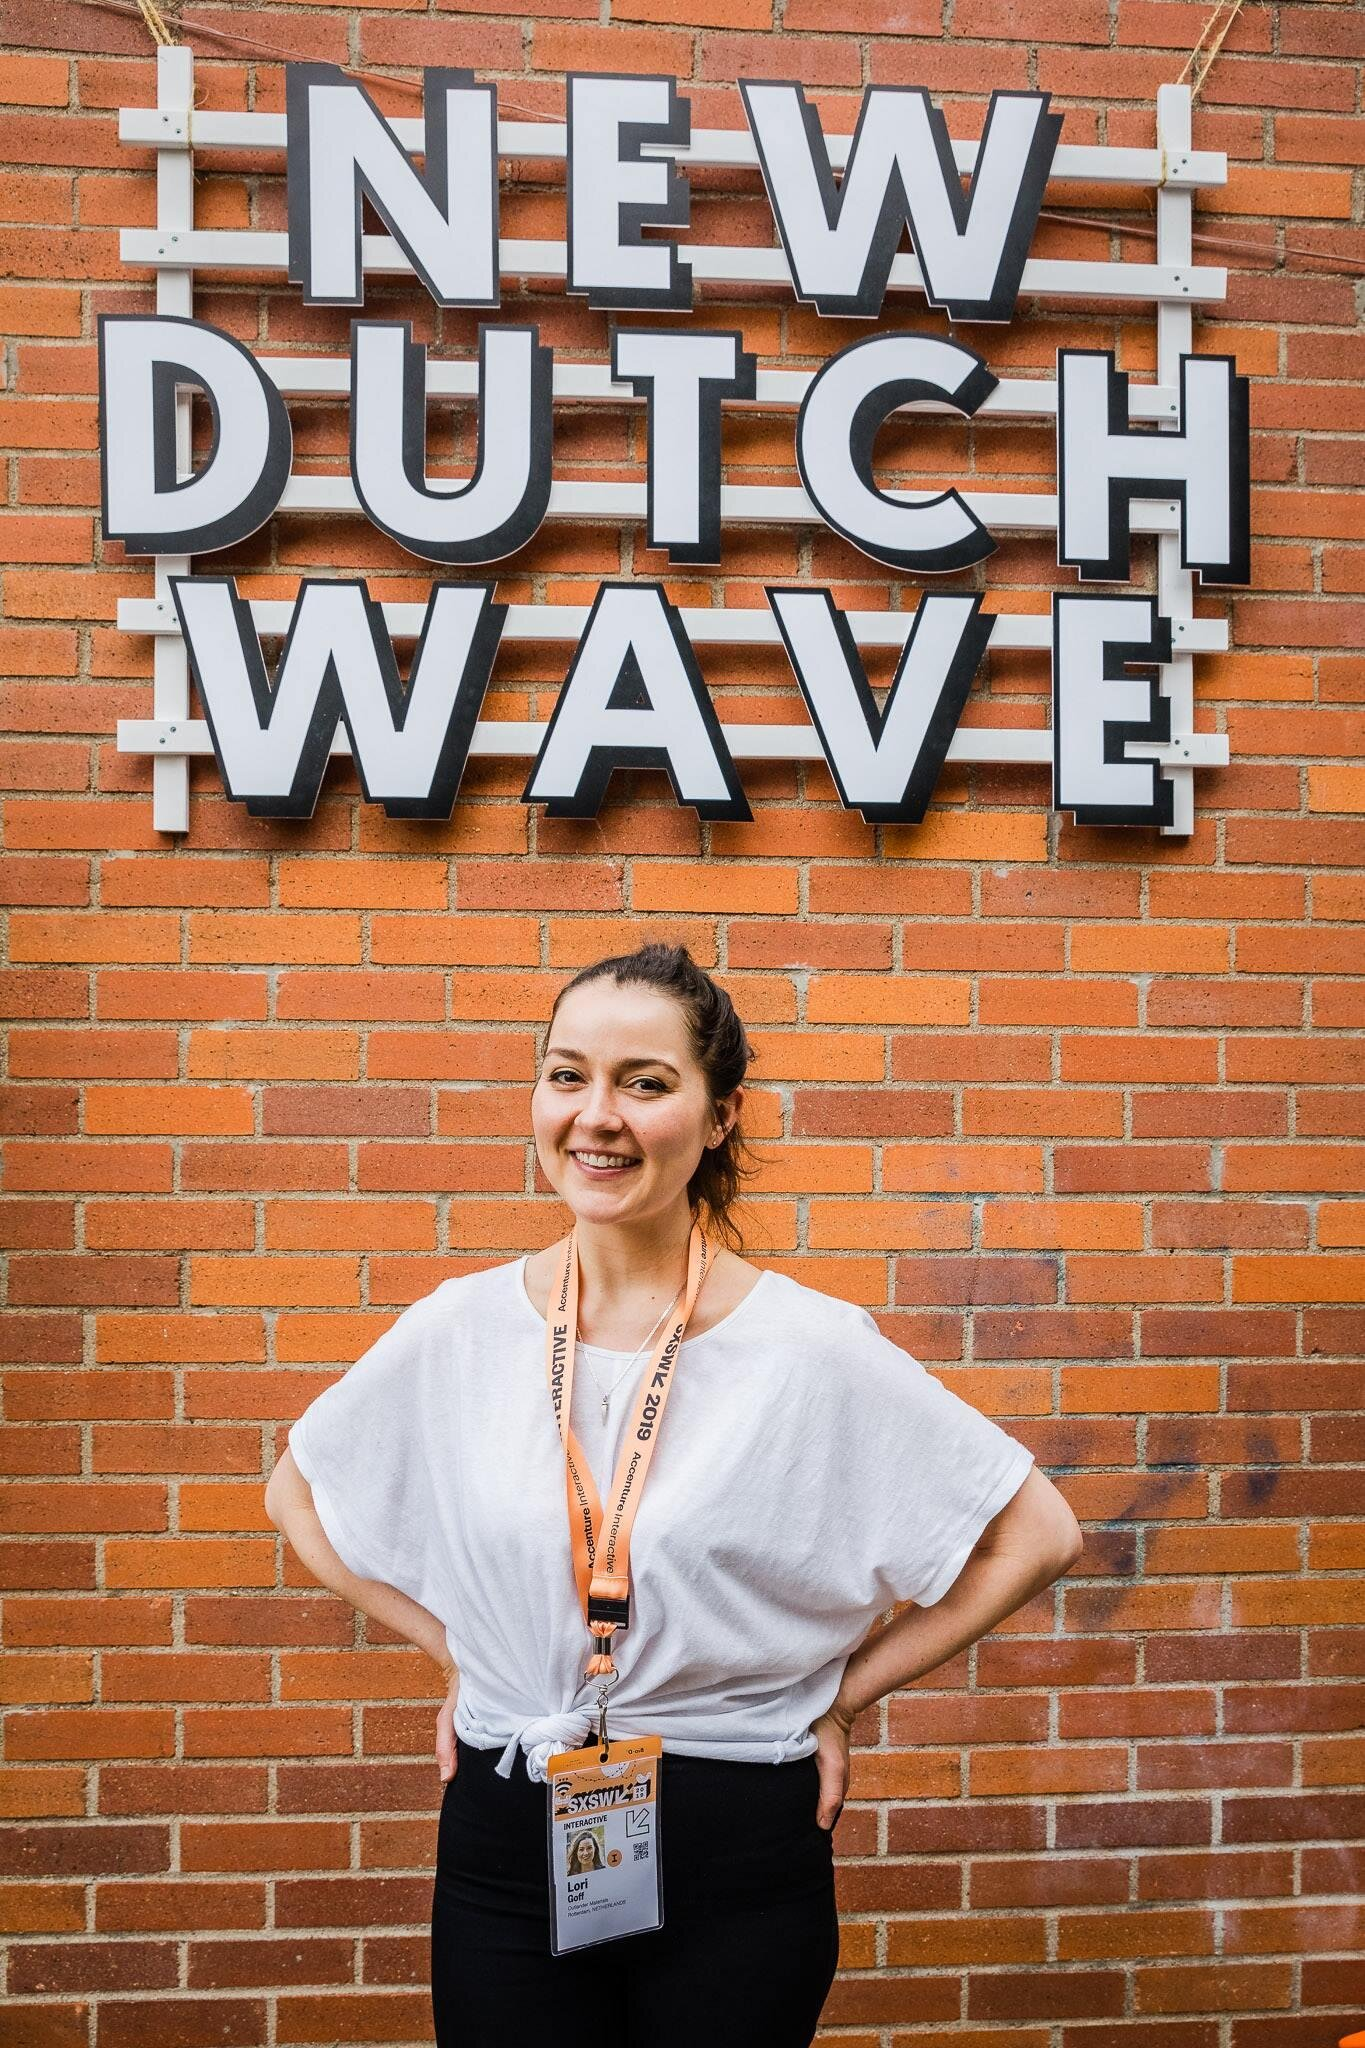 Rotterdam SXSW 2019 Winner - The New Dutch Wave. As part of this program, startups are given the opportunity to present their company to potential international investors, media and incubators. They increase their chance of gaining a foothold in the United States and finding investments for their startup.